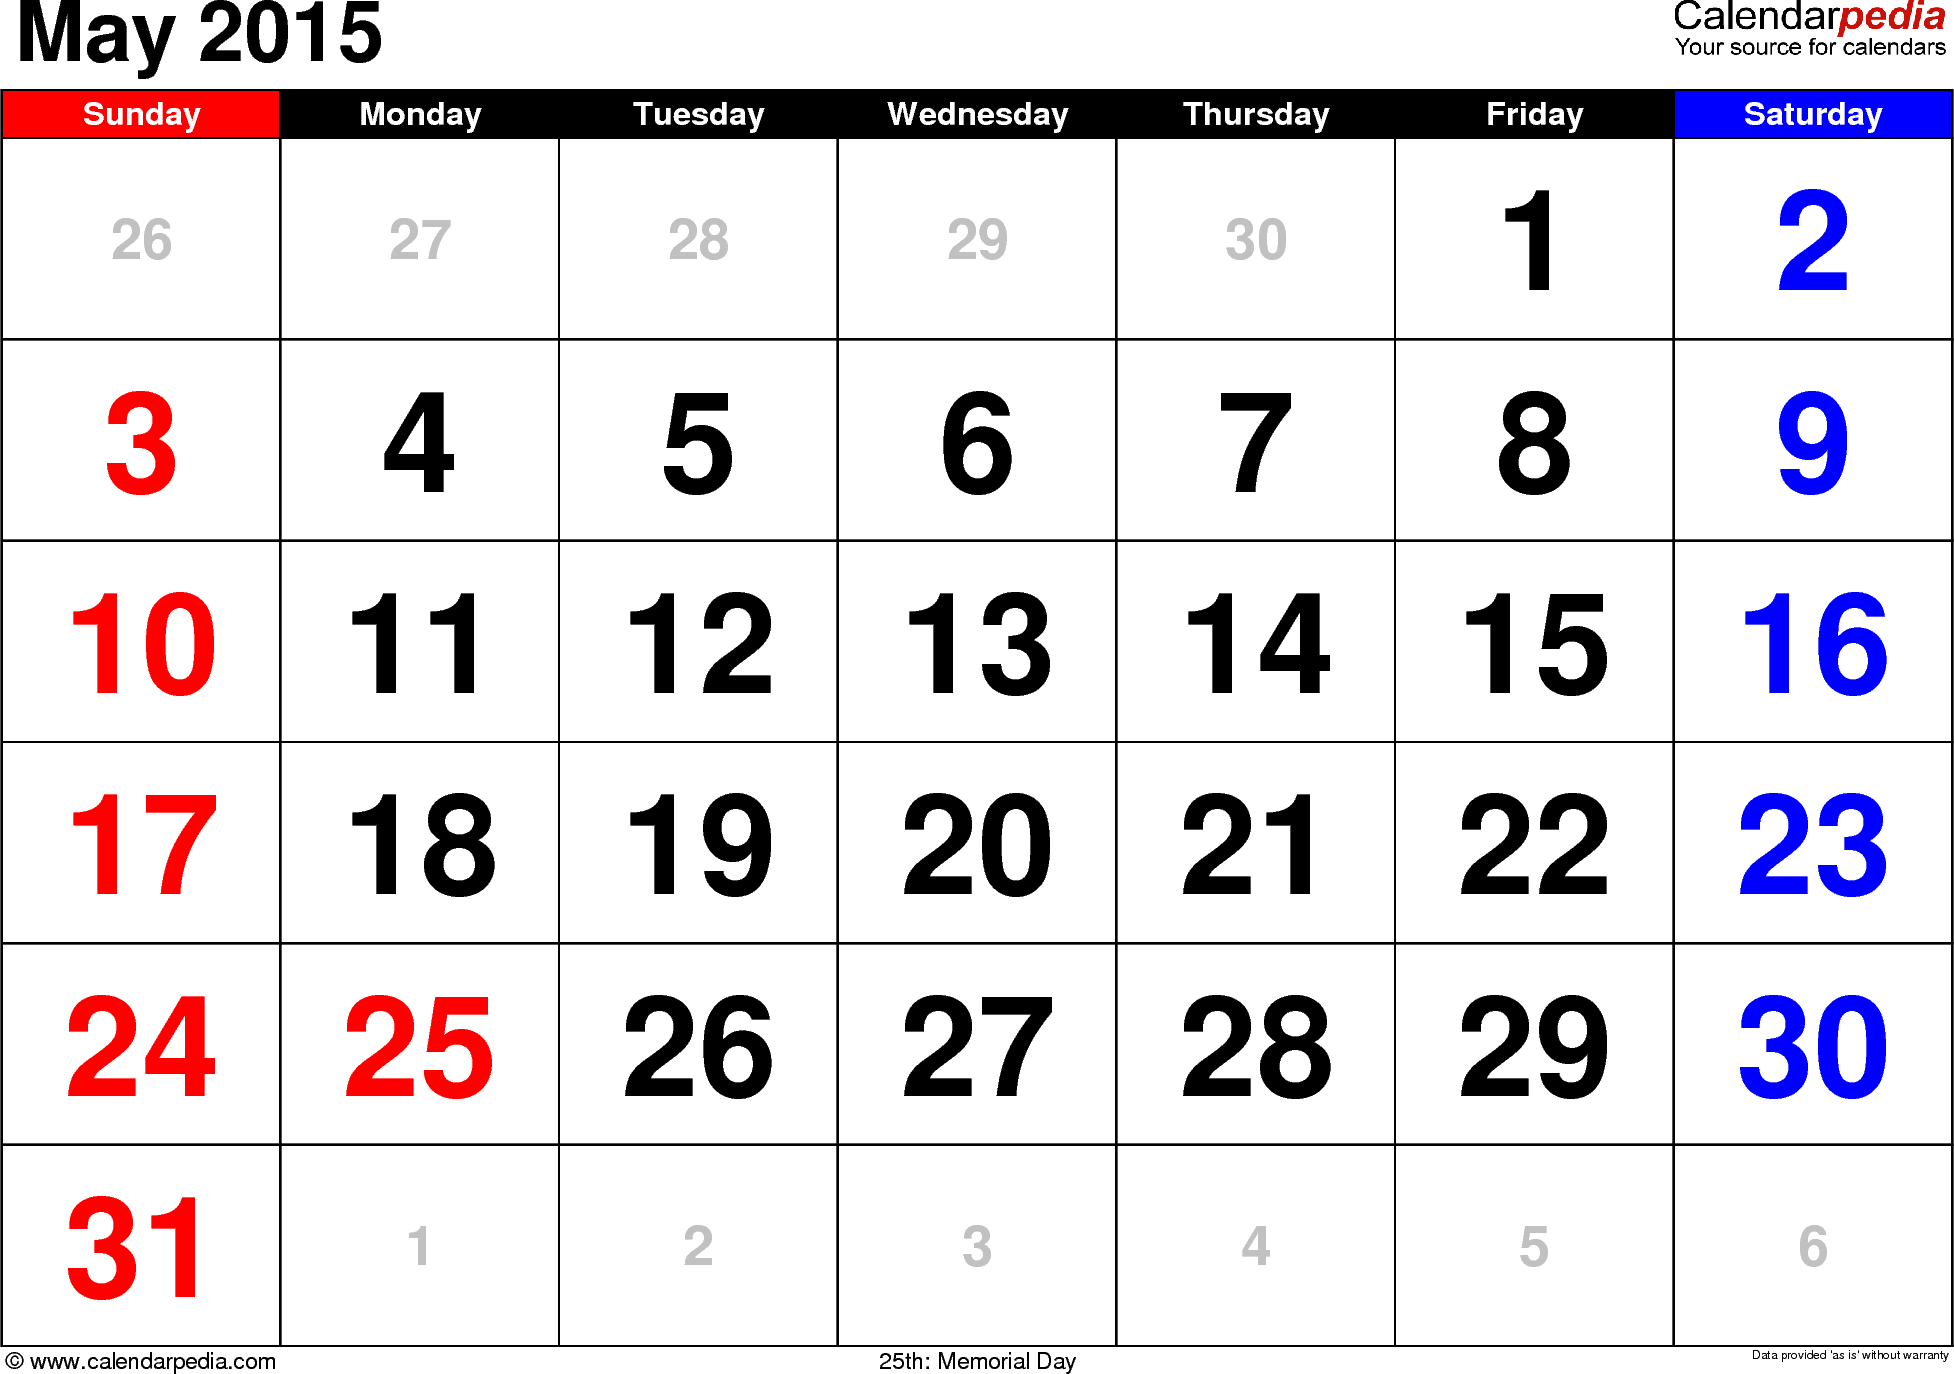 May 2015 calendar, landscape orientation, large numerals, available as printable templates for Word, Excel and PDF